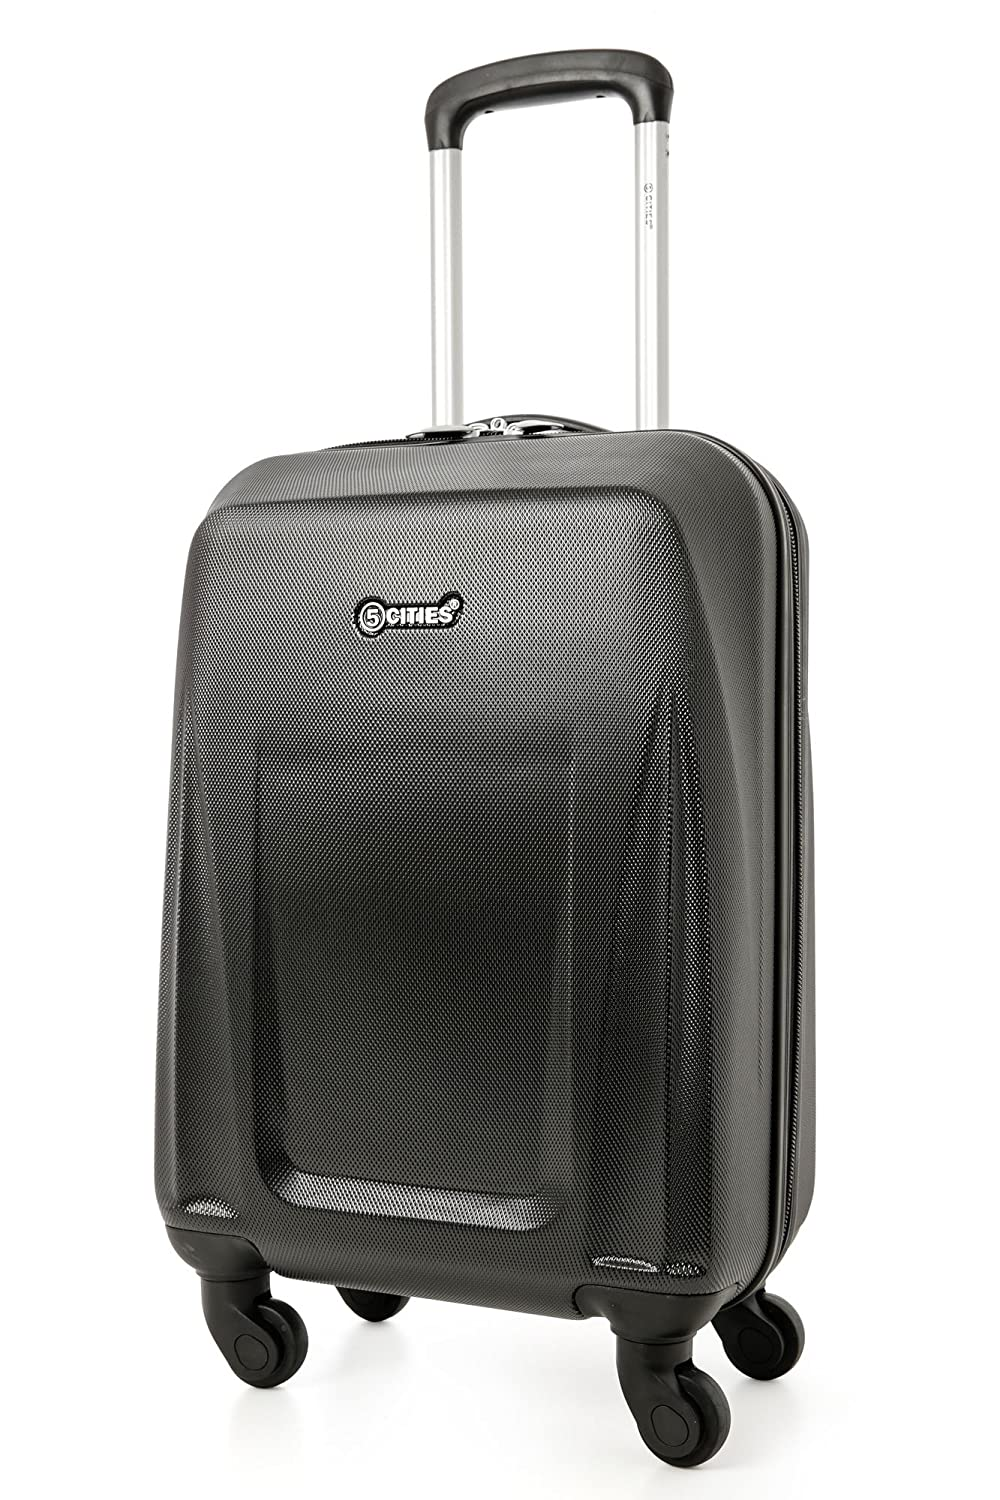 291356eb0648 5 Cities Lightweight Abs Hard Shell Cabin Suitcase Approve for Ryanair  Easyjet British Airways and More ABS125 Black 21 Hand Luggage, 55 cm, 32.0  L, Black